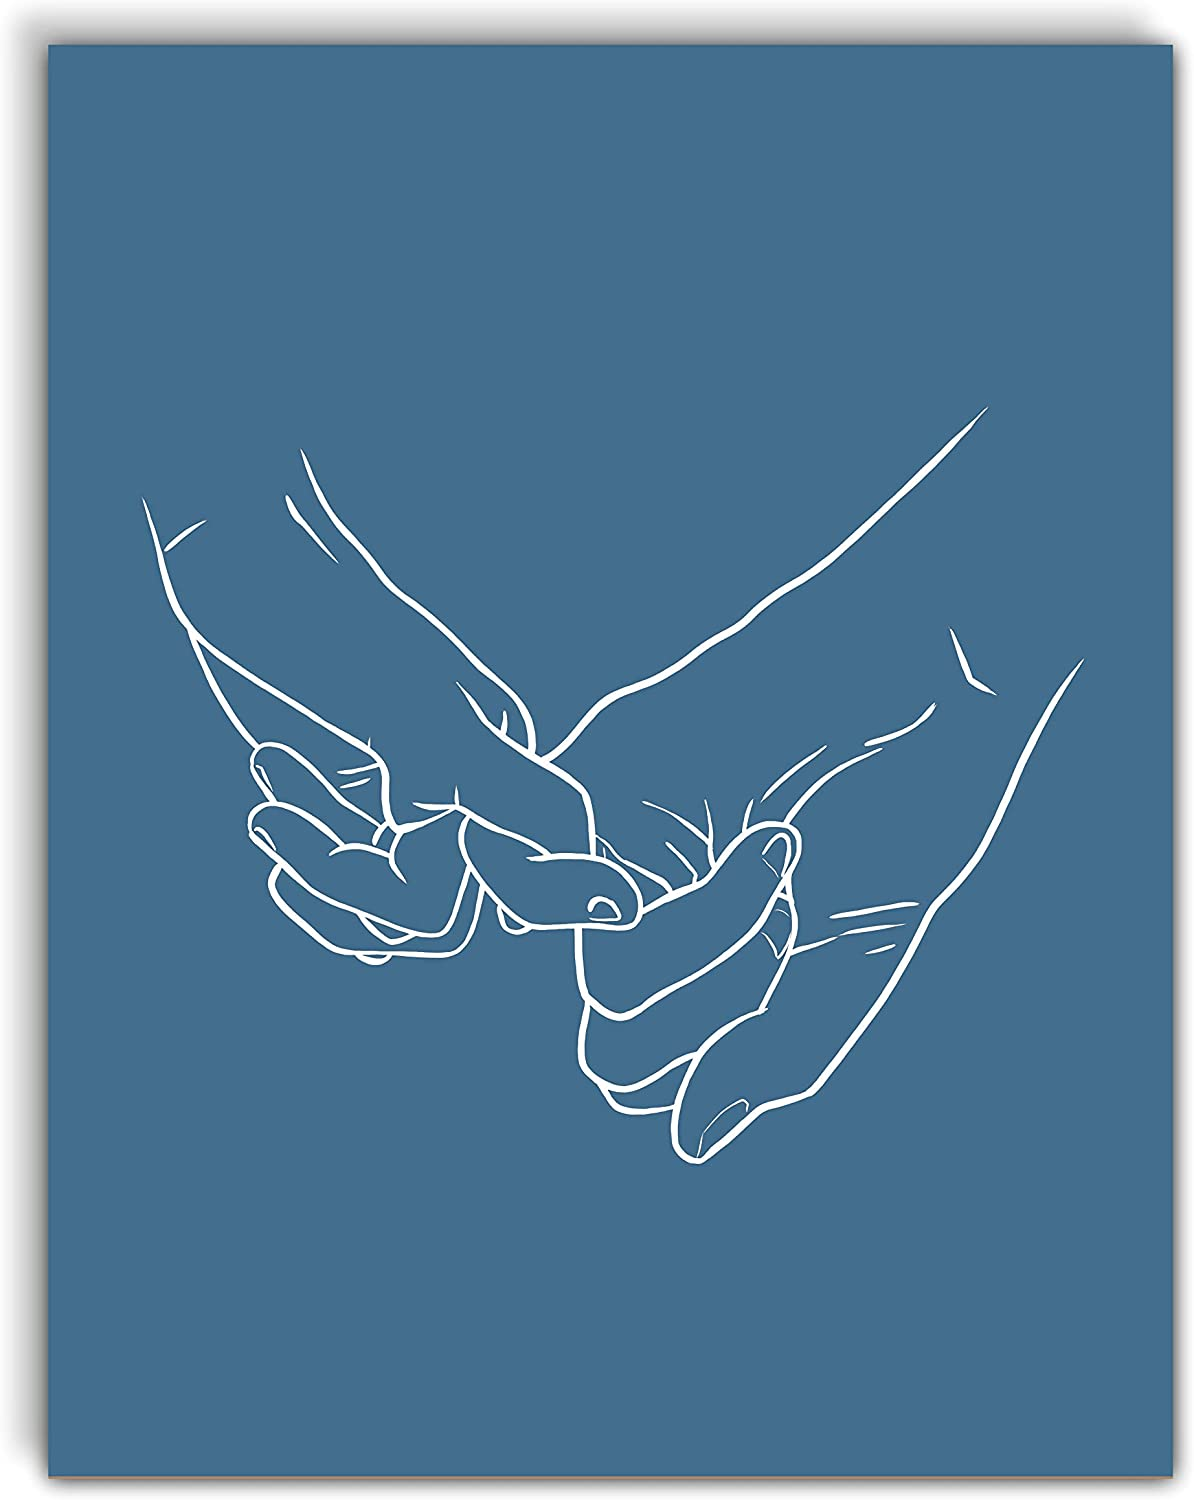 VintBo, Pinky Promise, Minimalist Modern Abstract Art Print Poster, Line Drawing Contemporary Wall Art for Home and Bedroom Decor 11x14 inches, Unframed (Blue)